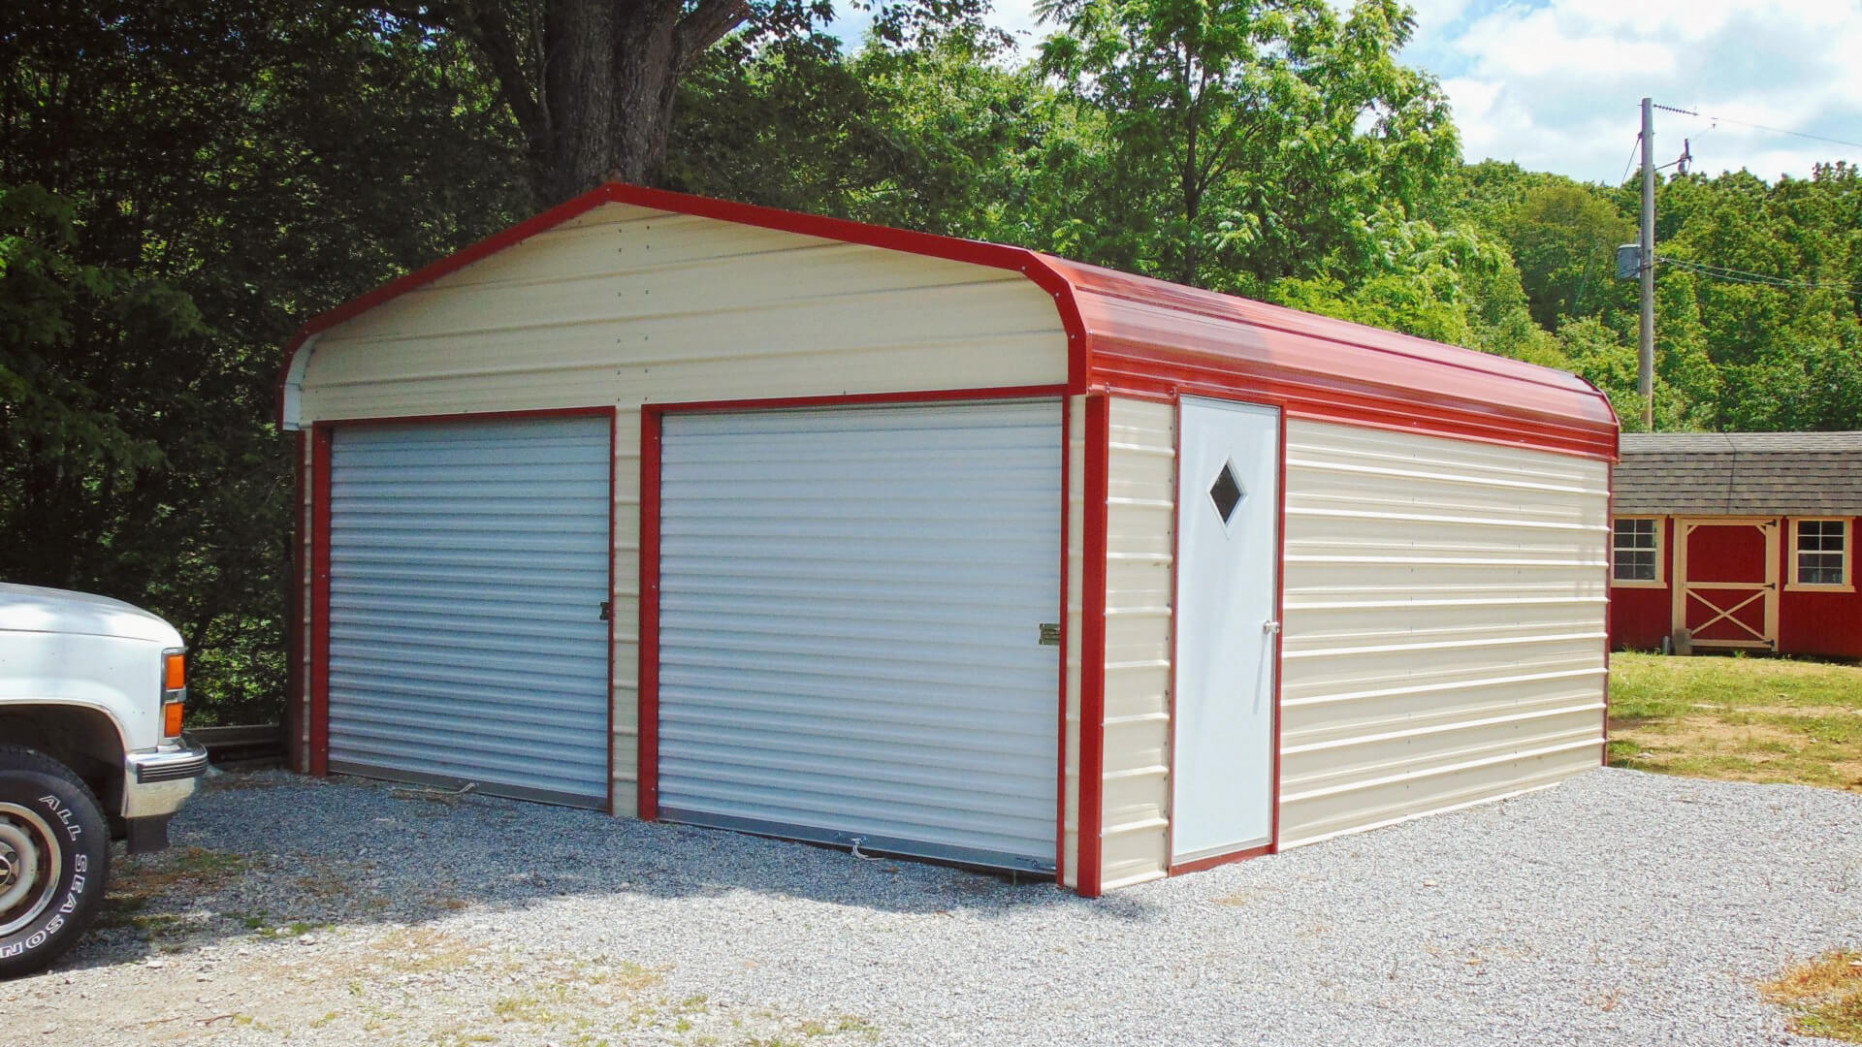 Enclosed Metal Garage, Enclosed Garage Buildings And Structures Carports In Front Of Garage